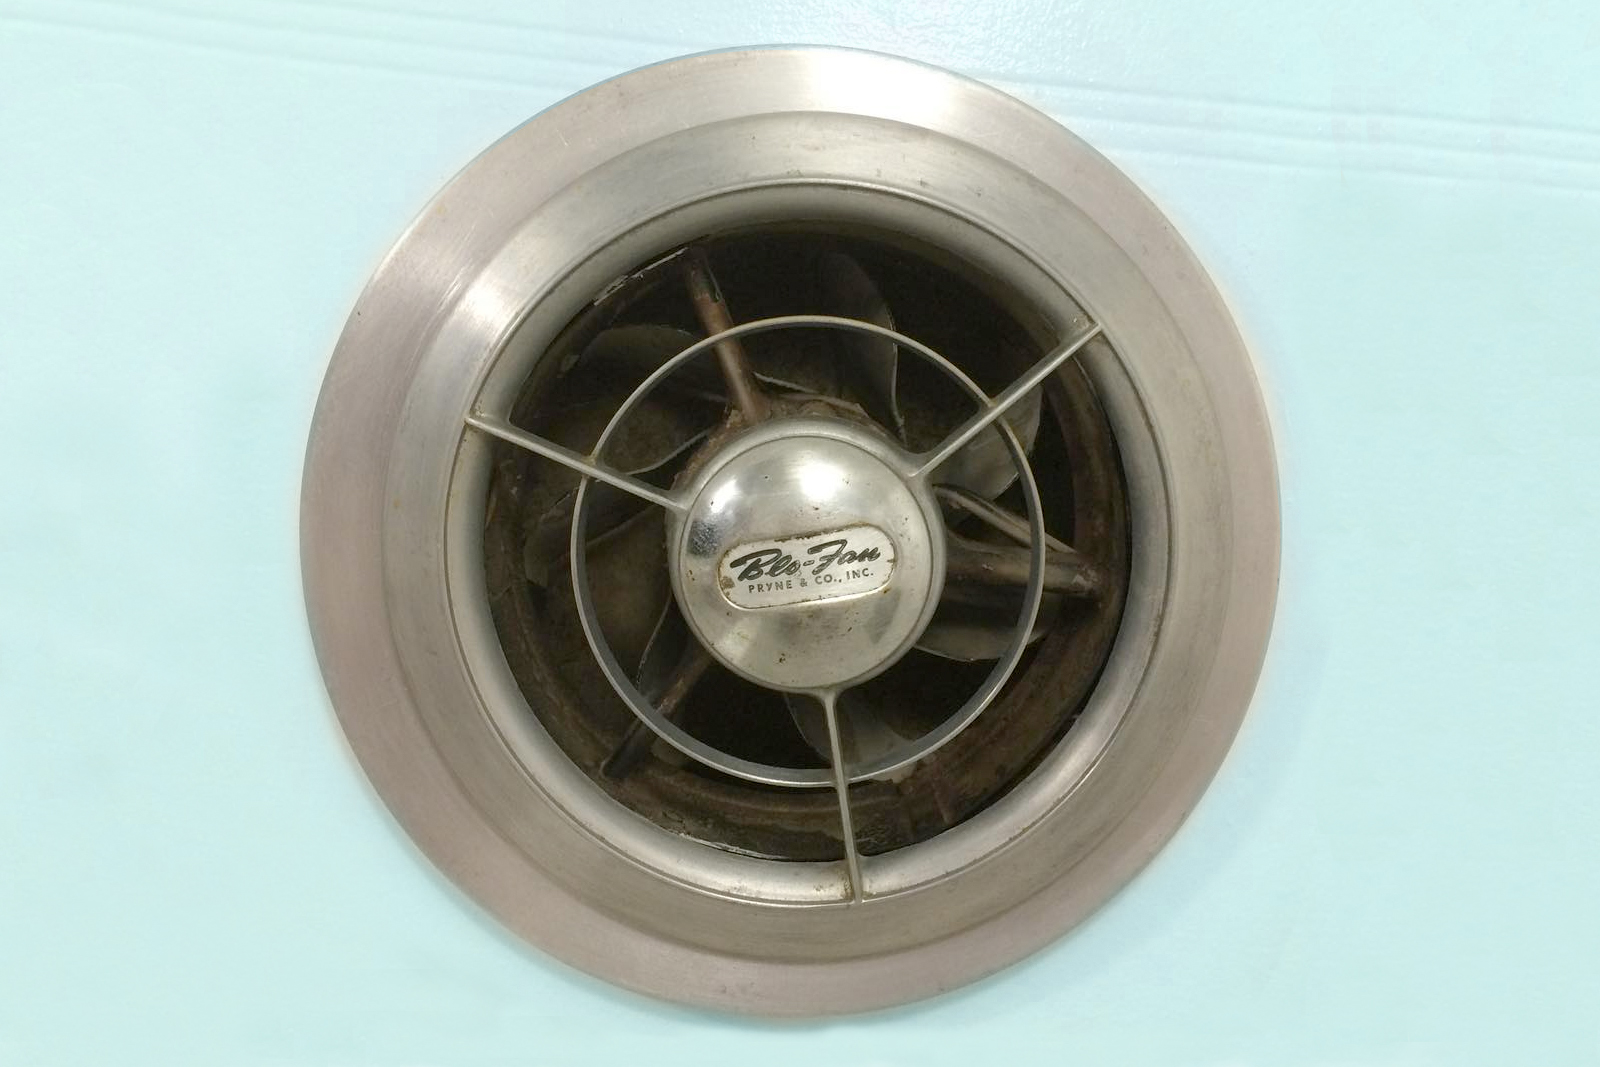 How To Install A Bathroom Exhaust Fan - Bathroom ceiling fan installation